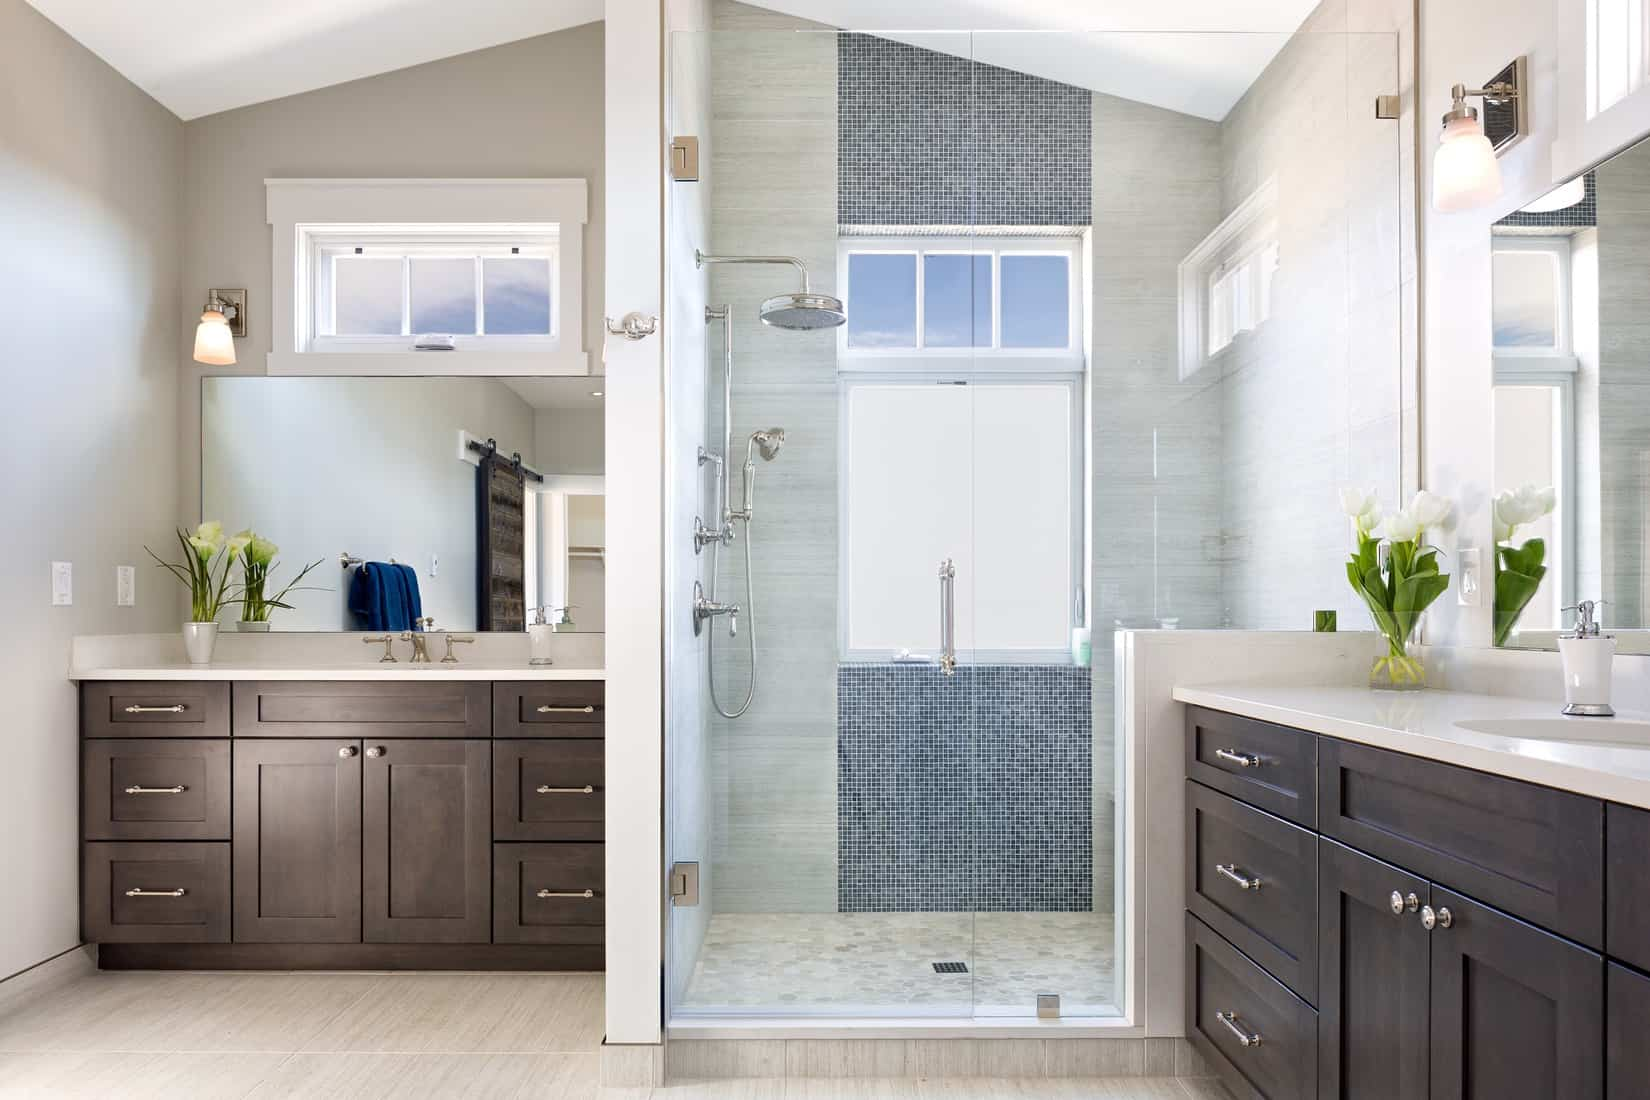 Boulder New Home Build - Training Paradise - Master Bathroom Double Vanity